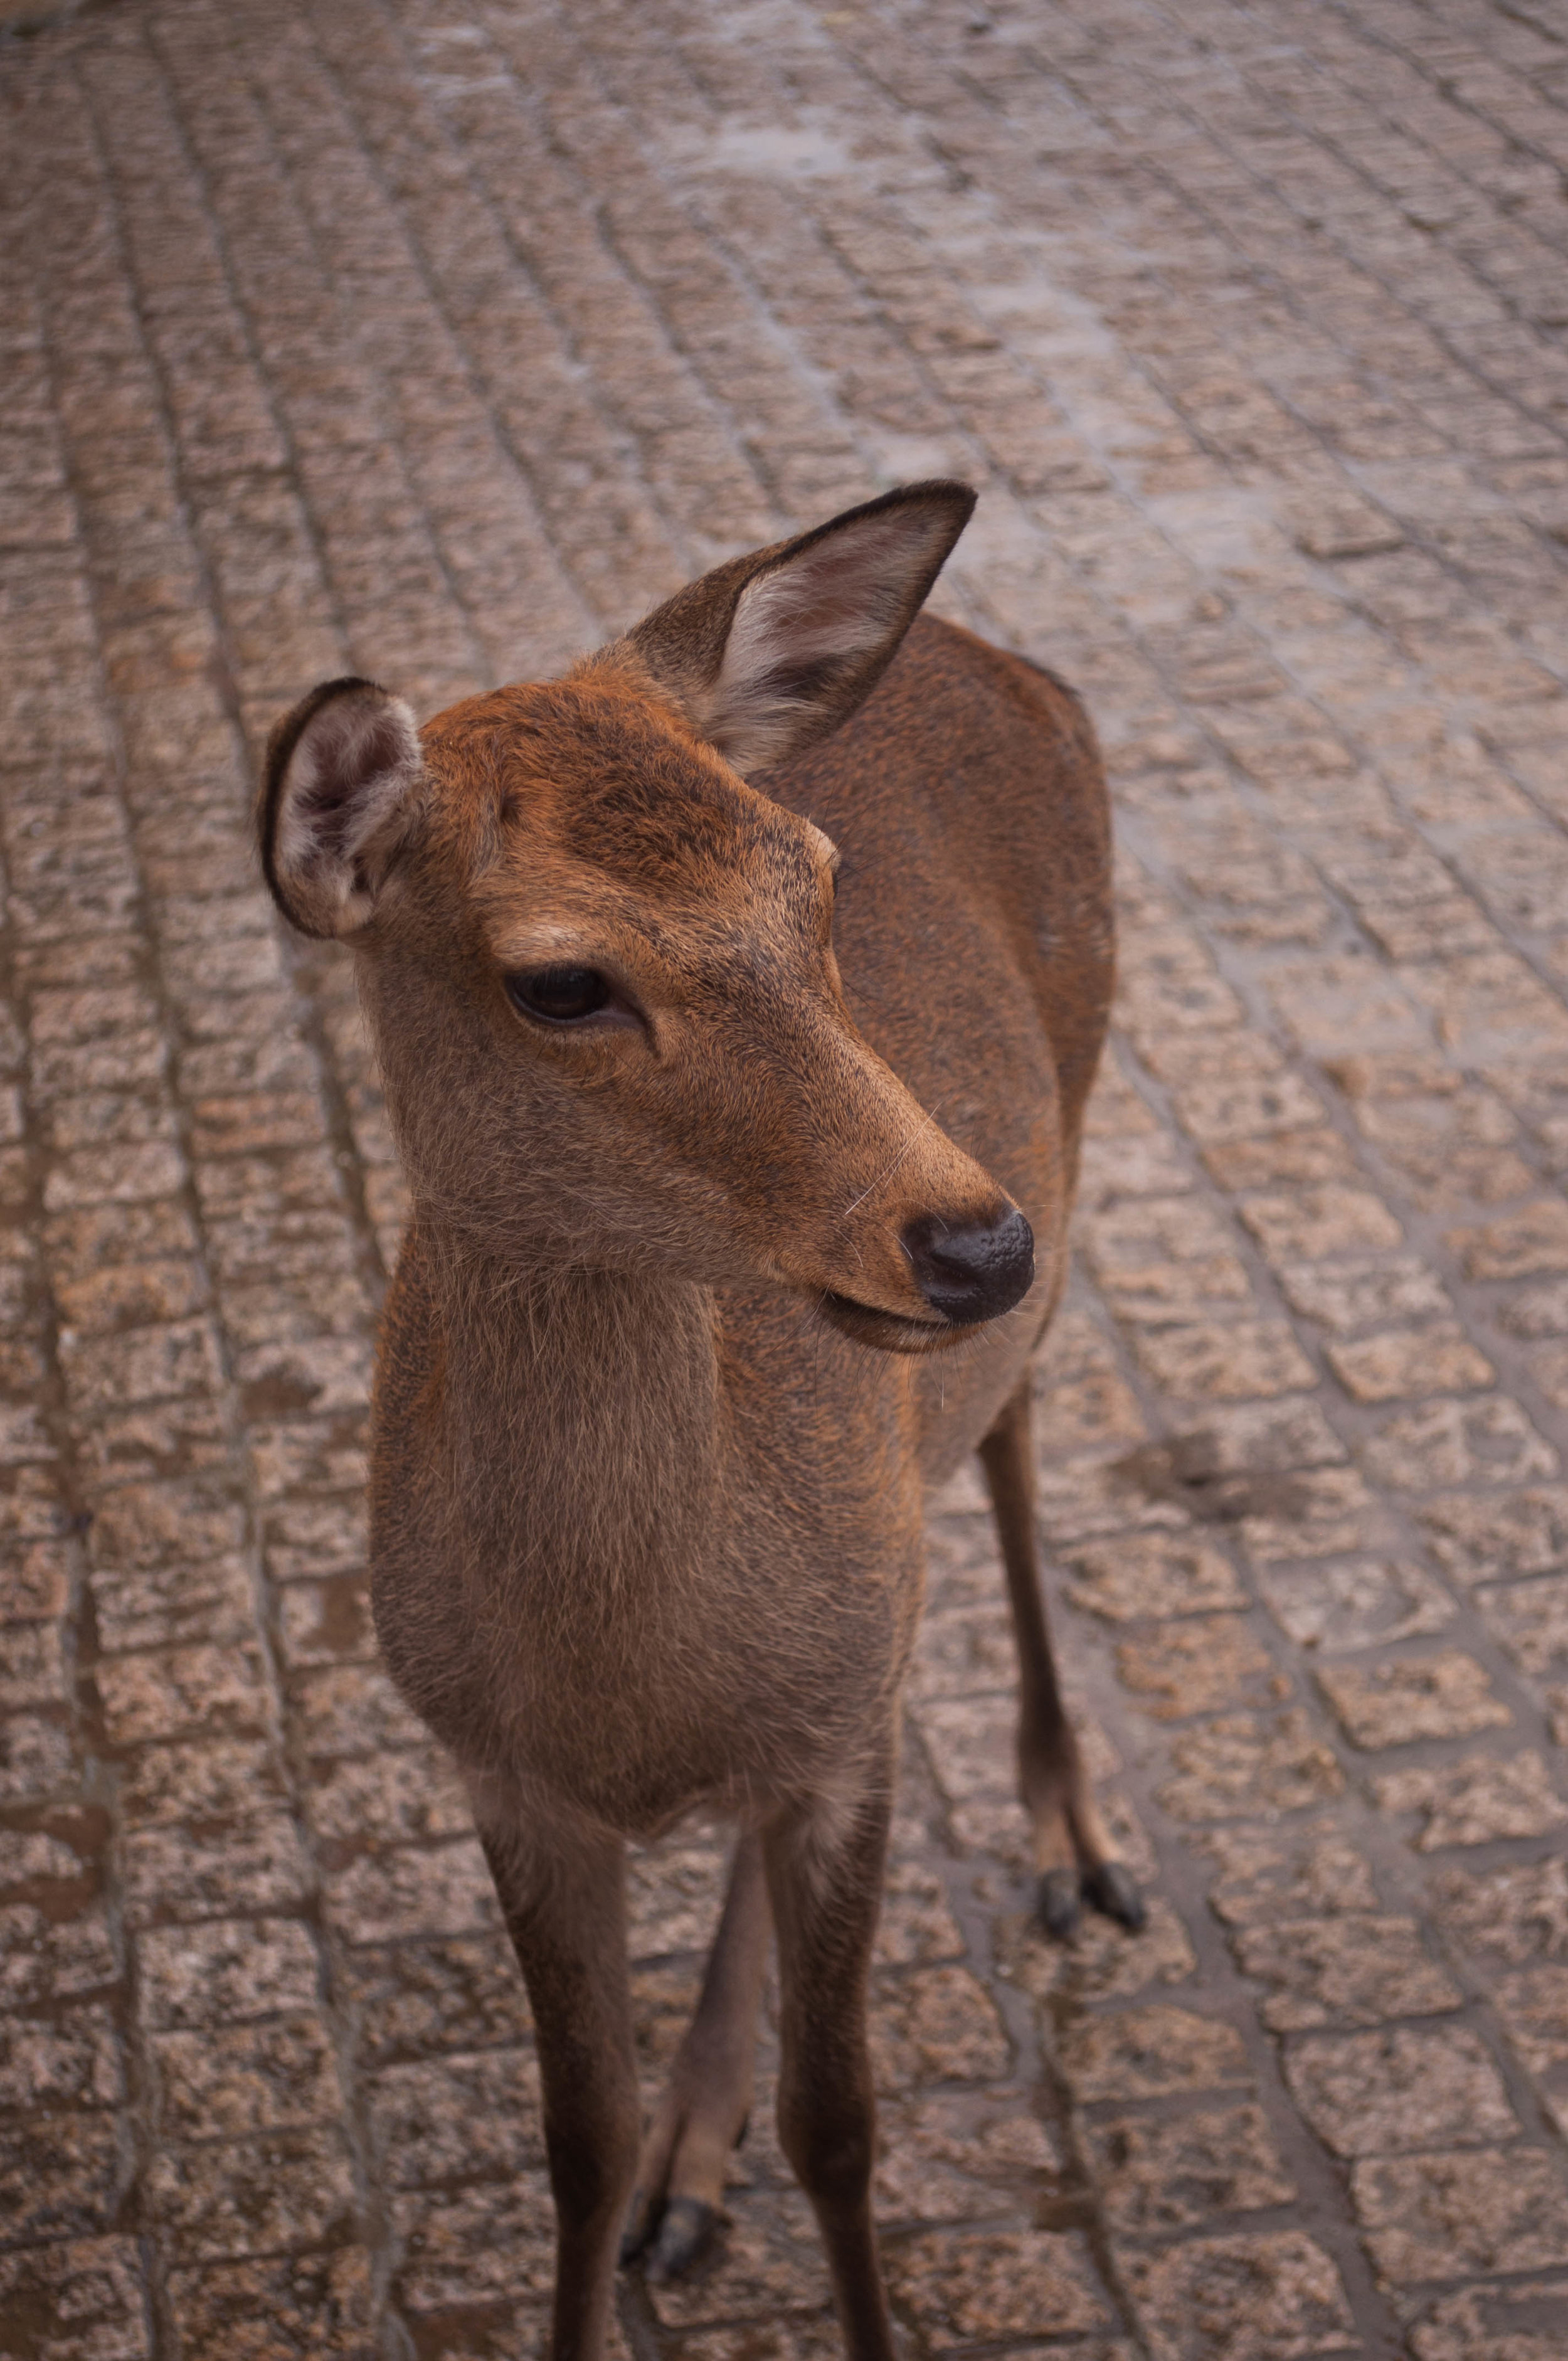 Nara and its deer part of the itinerary for couples doing their honeymoon in Japan